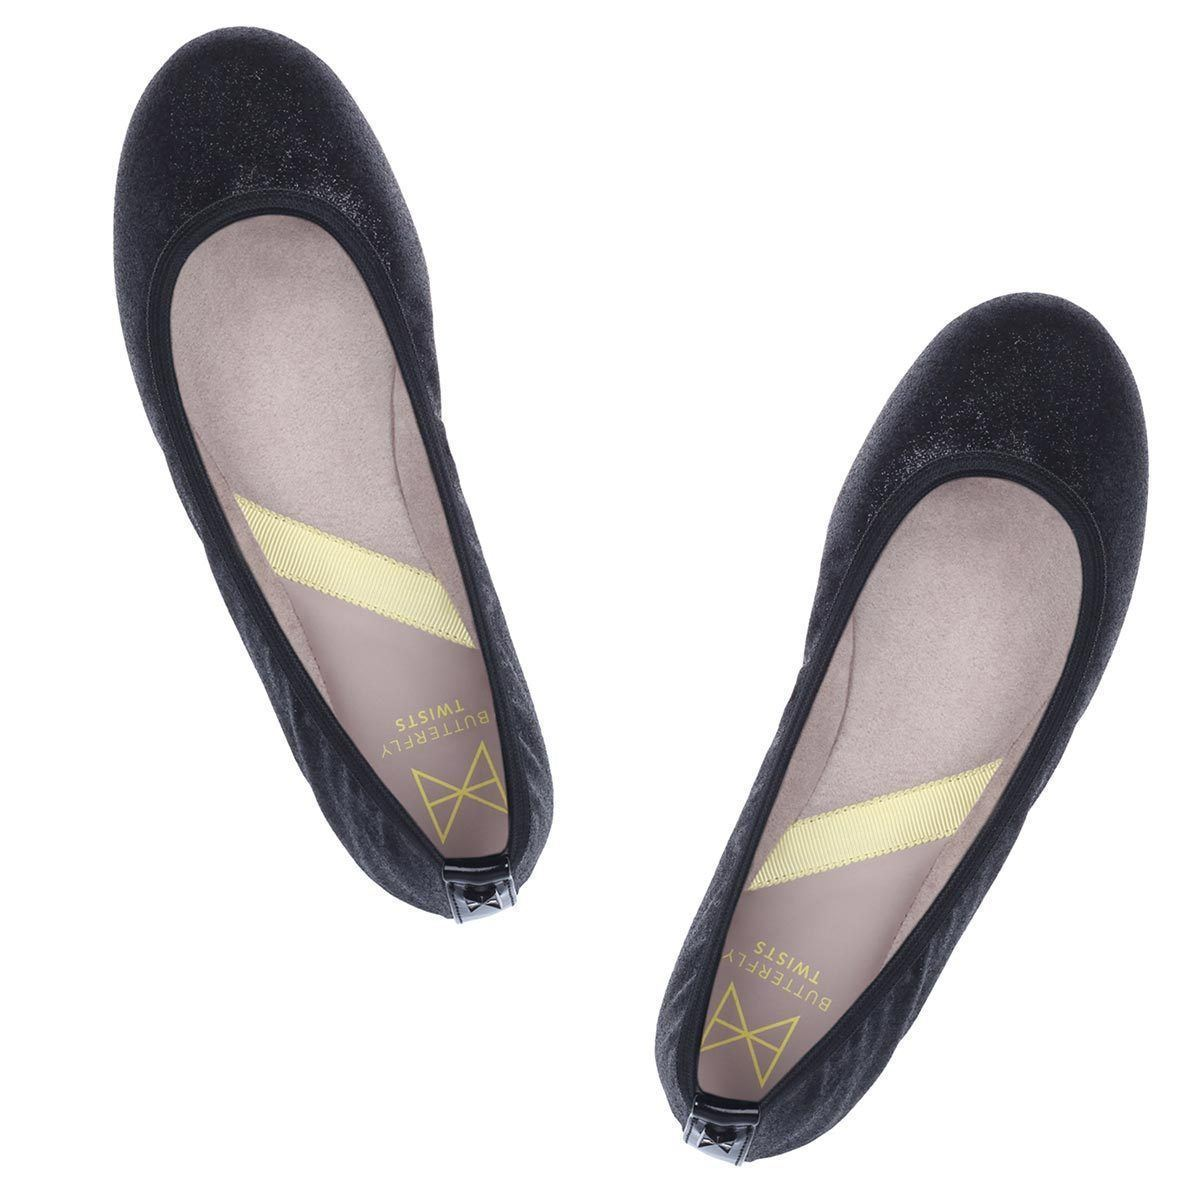 Be simple yet elegant in our round toe ballerina SOPHIA. Combining a black glitter upper with a feminine shape, this style will take you from day to night. A classic round toe silhouette Sparkly black glitter upper Soft, comfortable faux suede lining Cushioning memory foam insoles for added comfort Folding Twist Tech Technology Flexible rubber sole: folding shoe We deliver to over 50 countries worldwide. to see which countries we deliver to please visit outåÊFAQåÊsection. We accept unworn pr